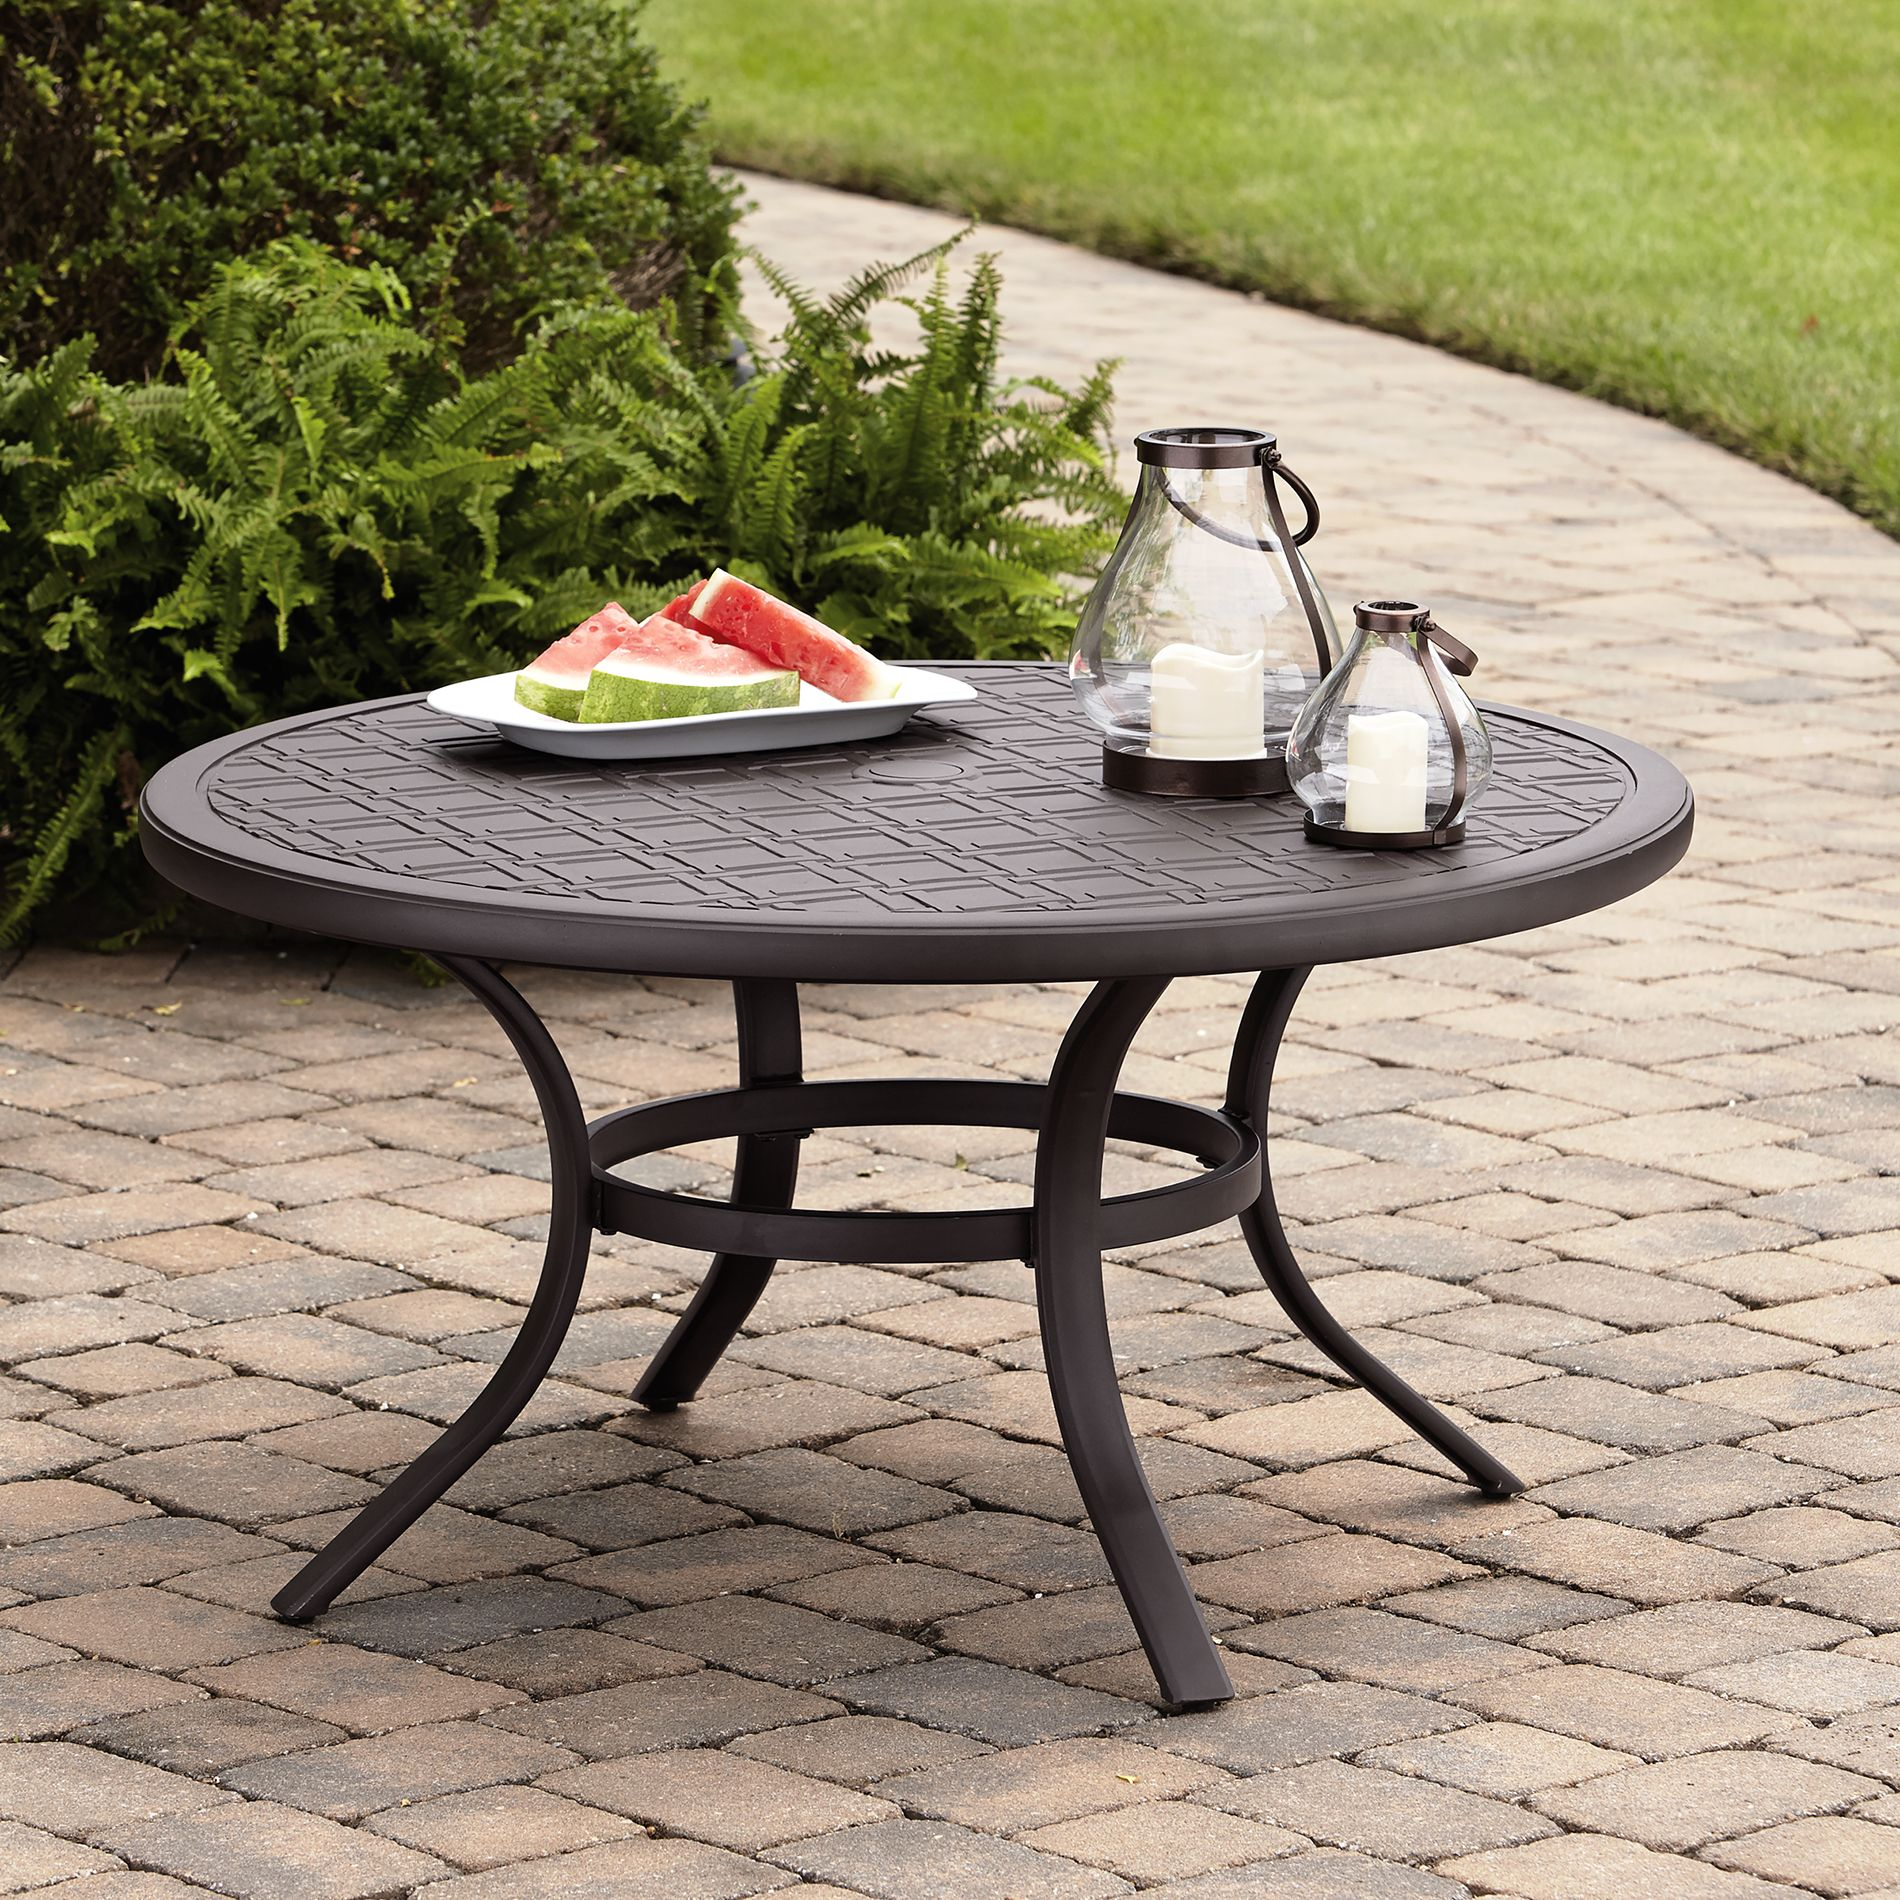 Awesome Perfect Patio Furniture At Kmart 43 On Home Design Ideas With Patio  Furniture At Kmart